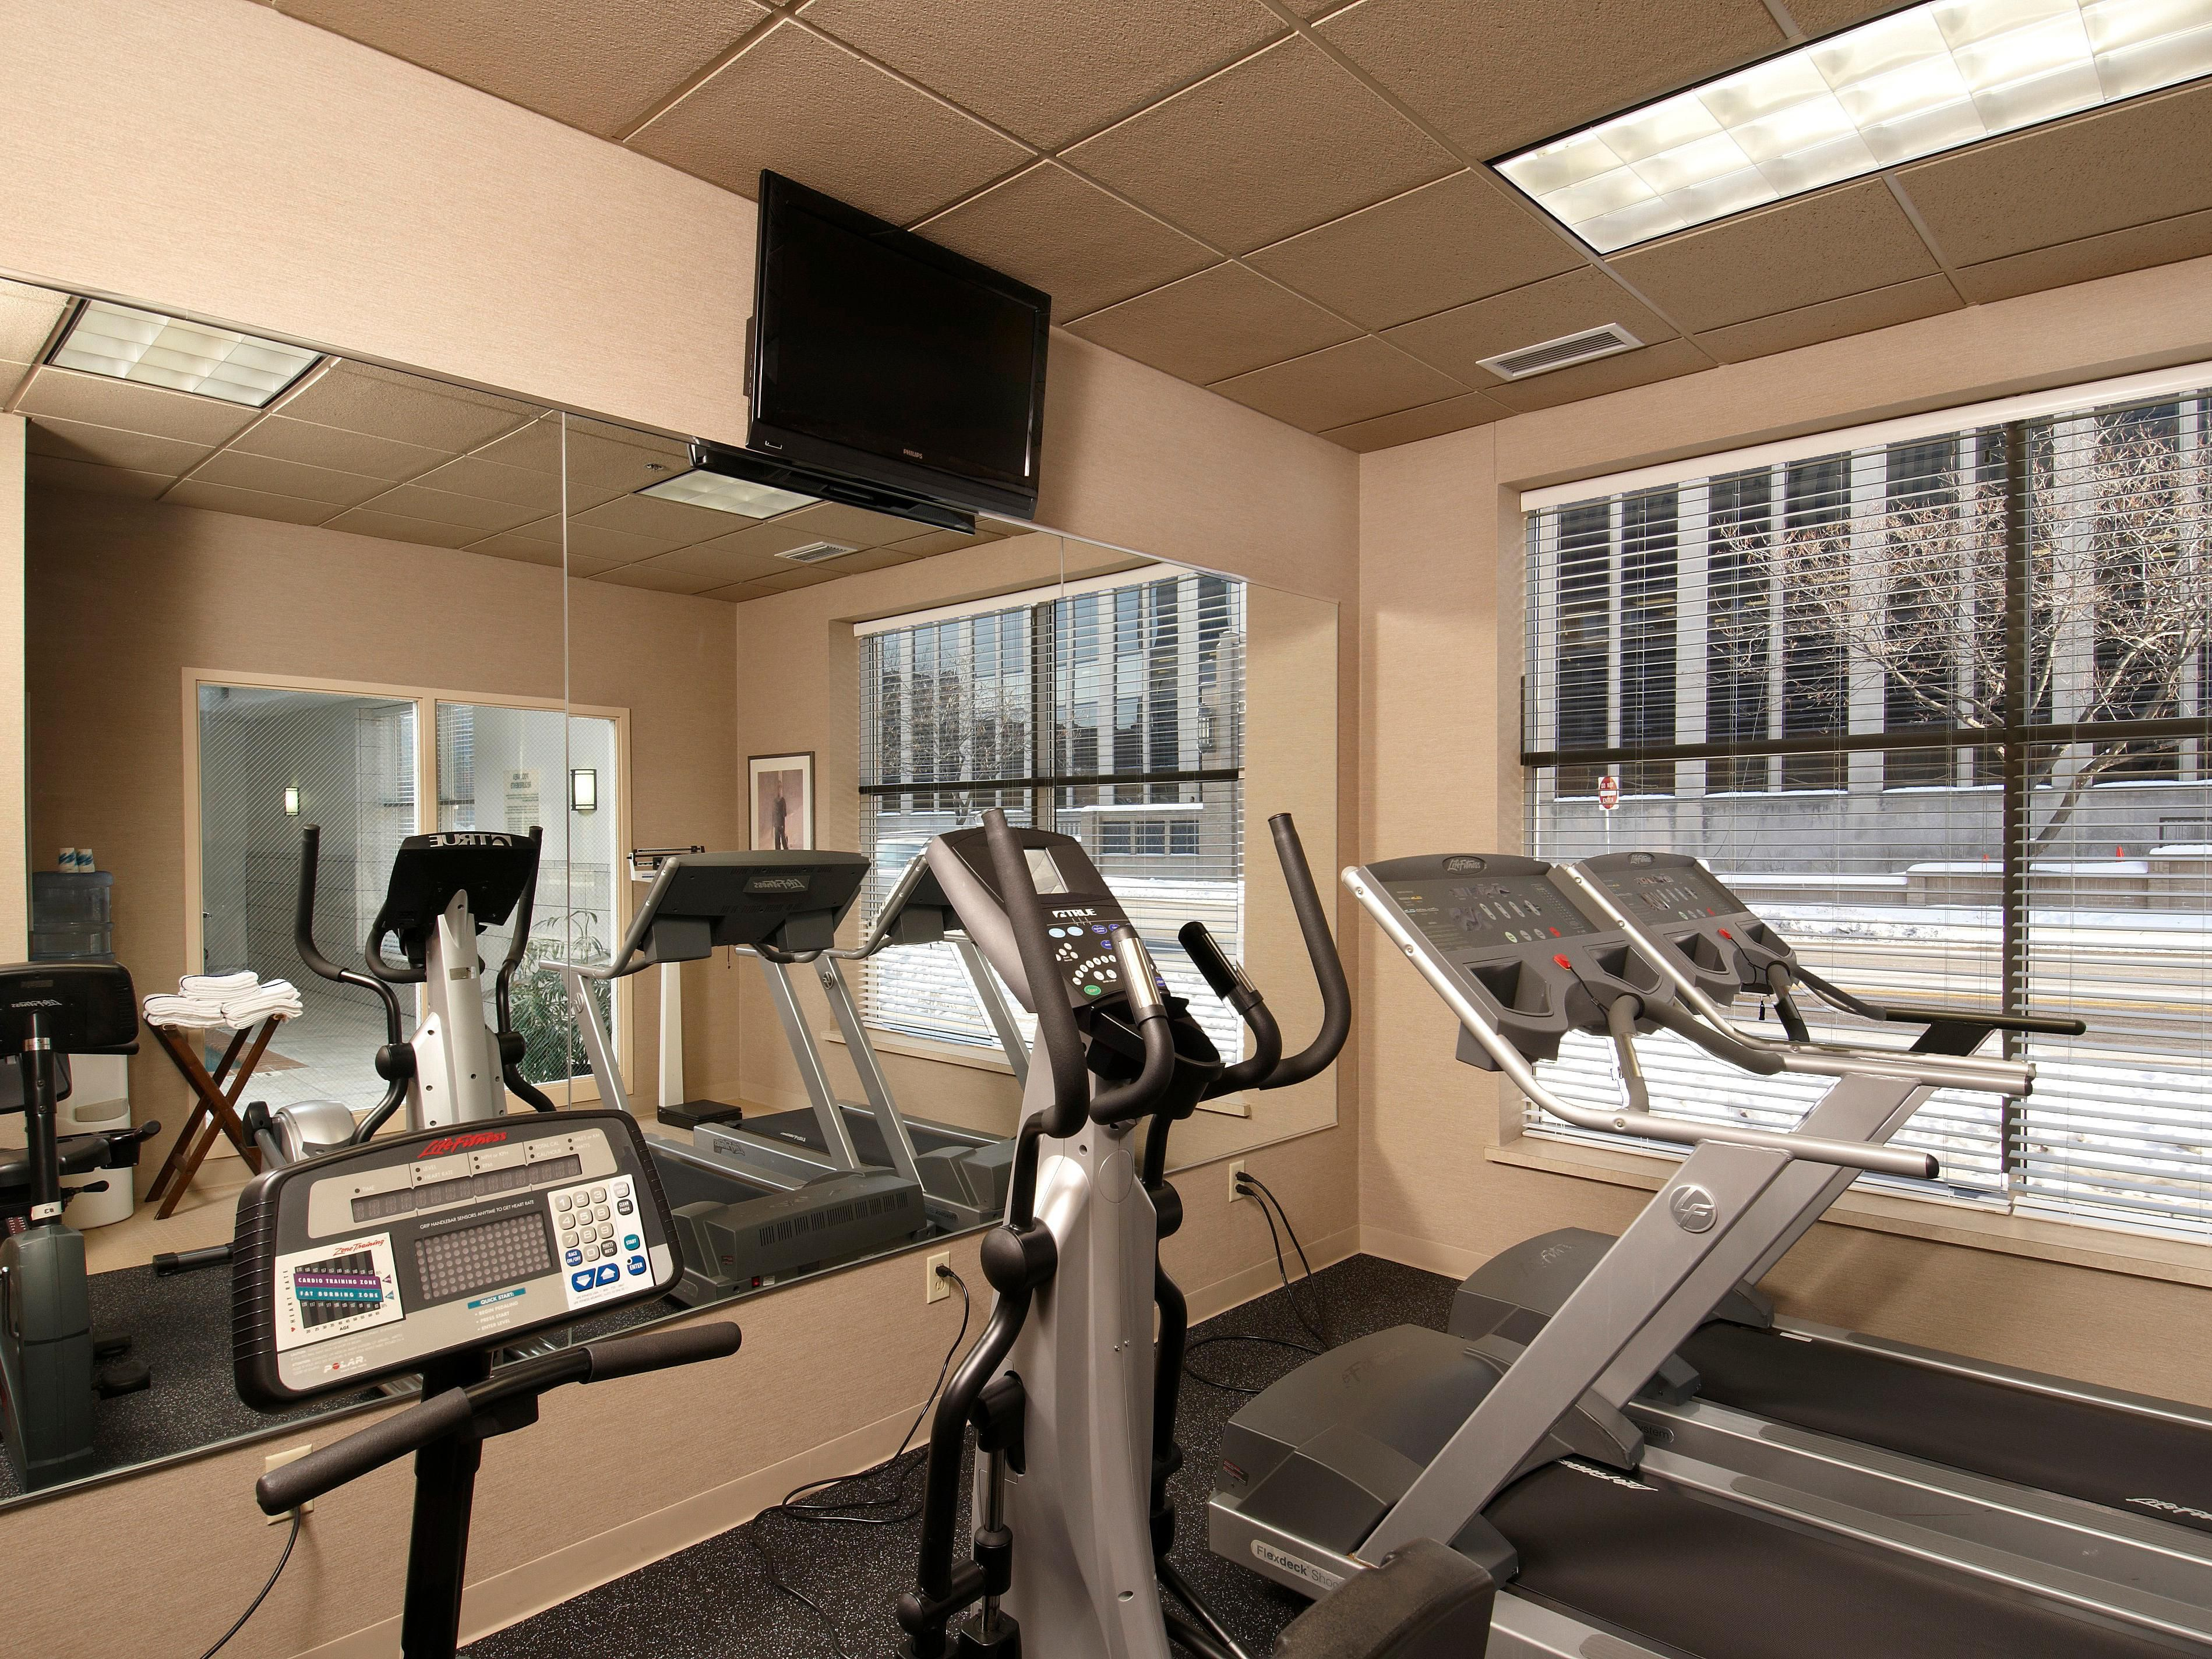 Holiday Inn Express & Suites Dwtn Mpls Conv Ctr - Fitness Center